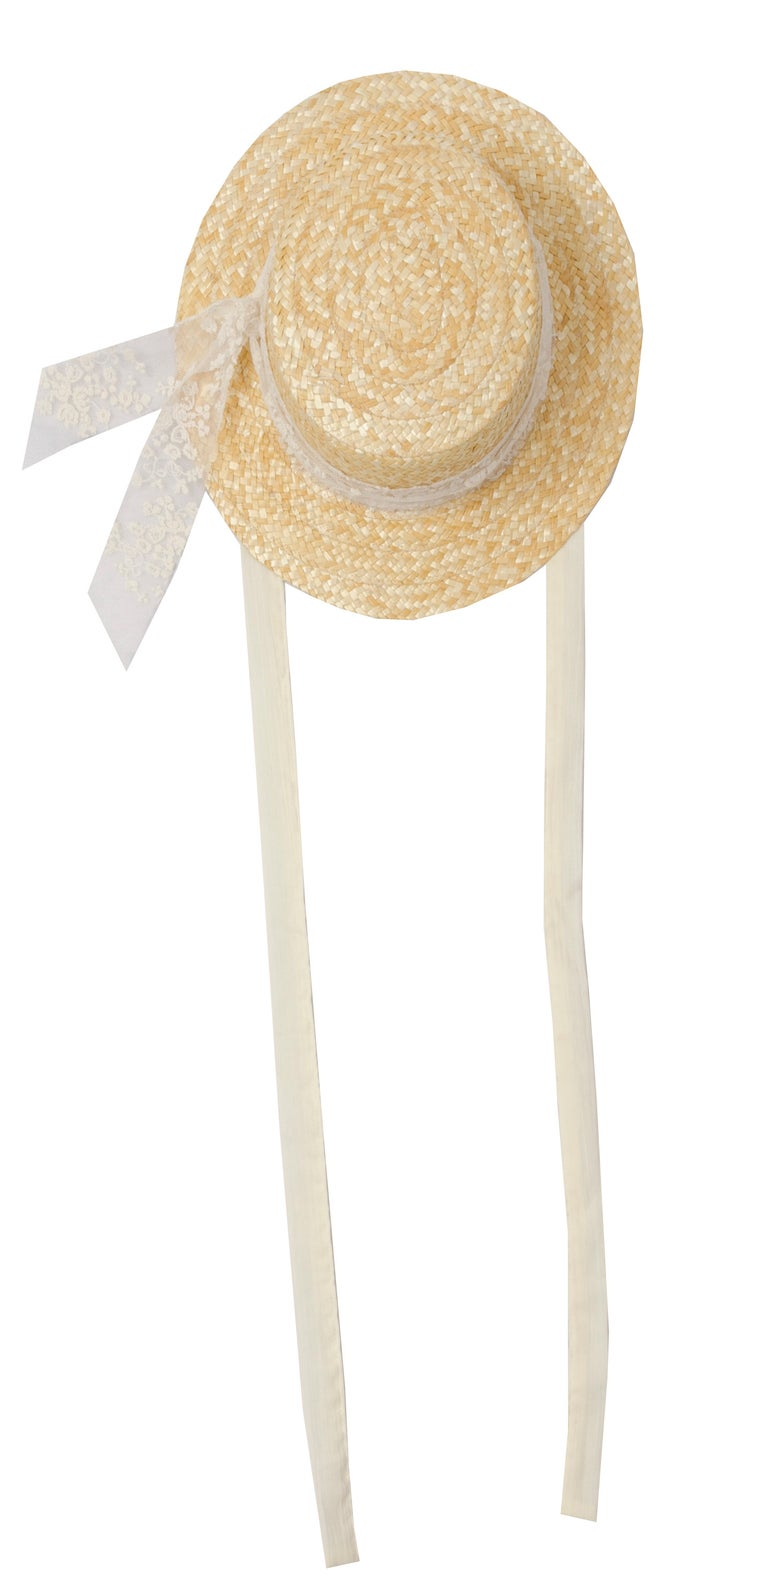 Image of STRAW HAT lace